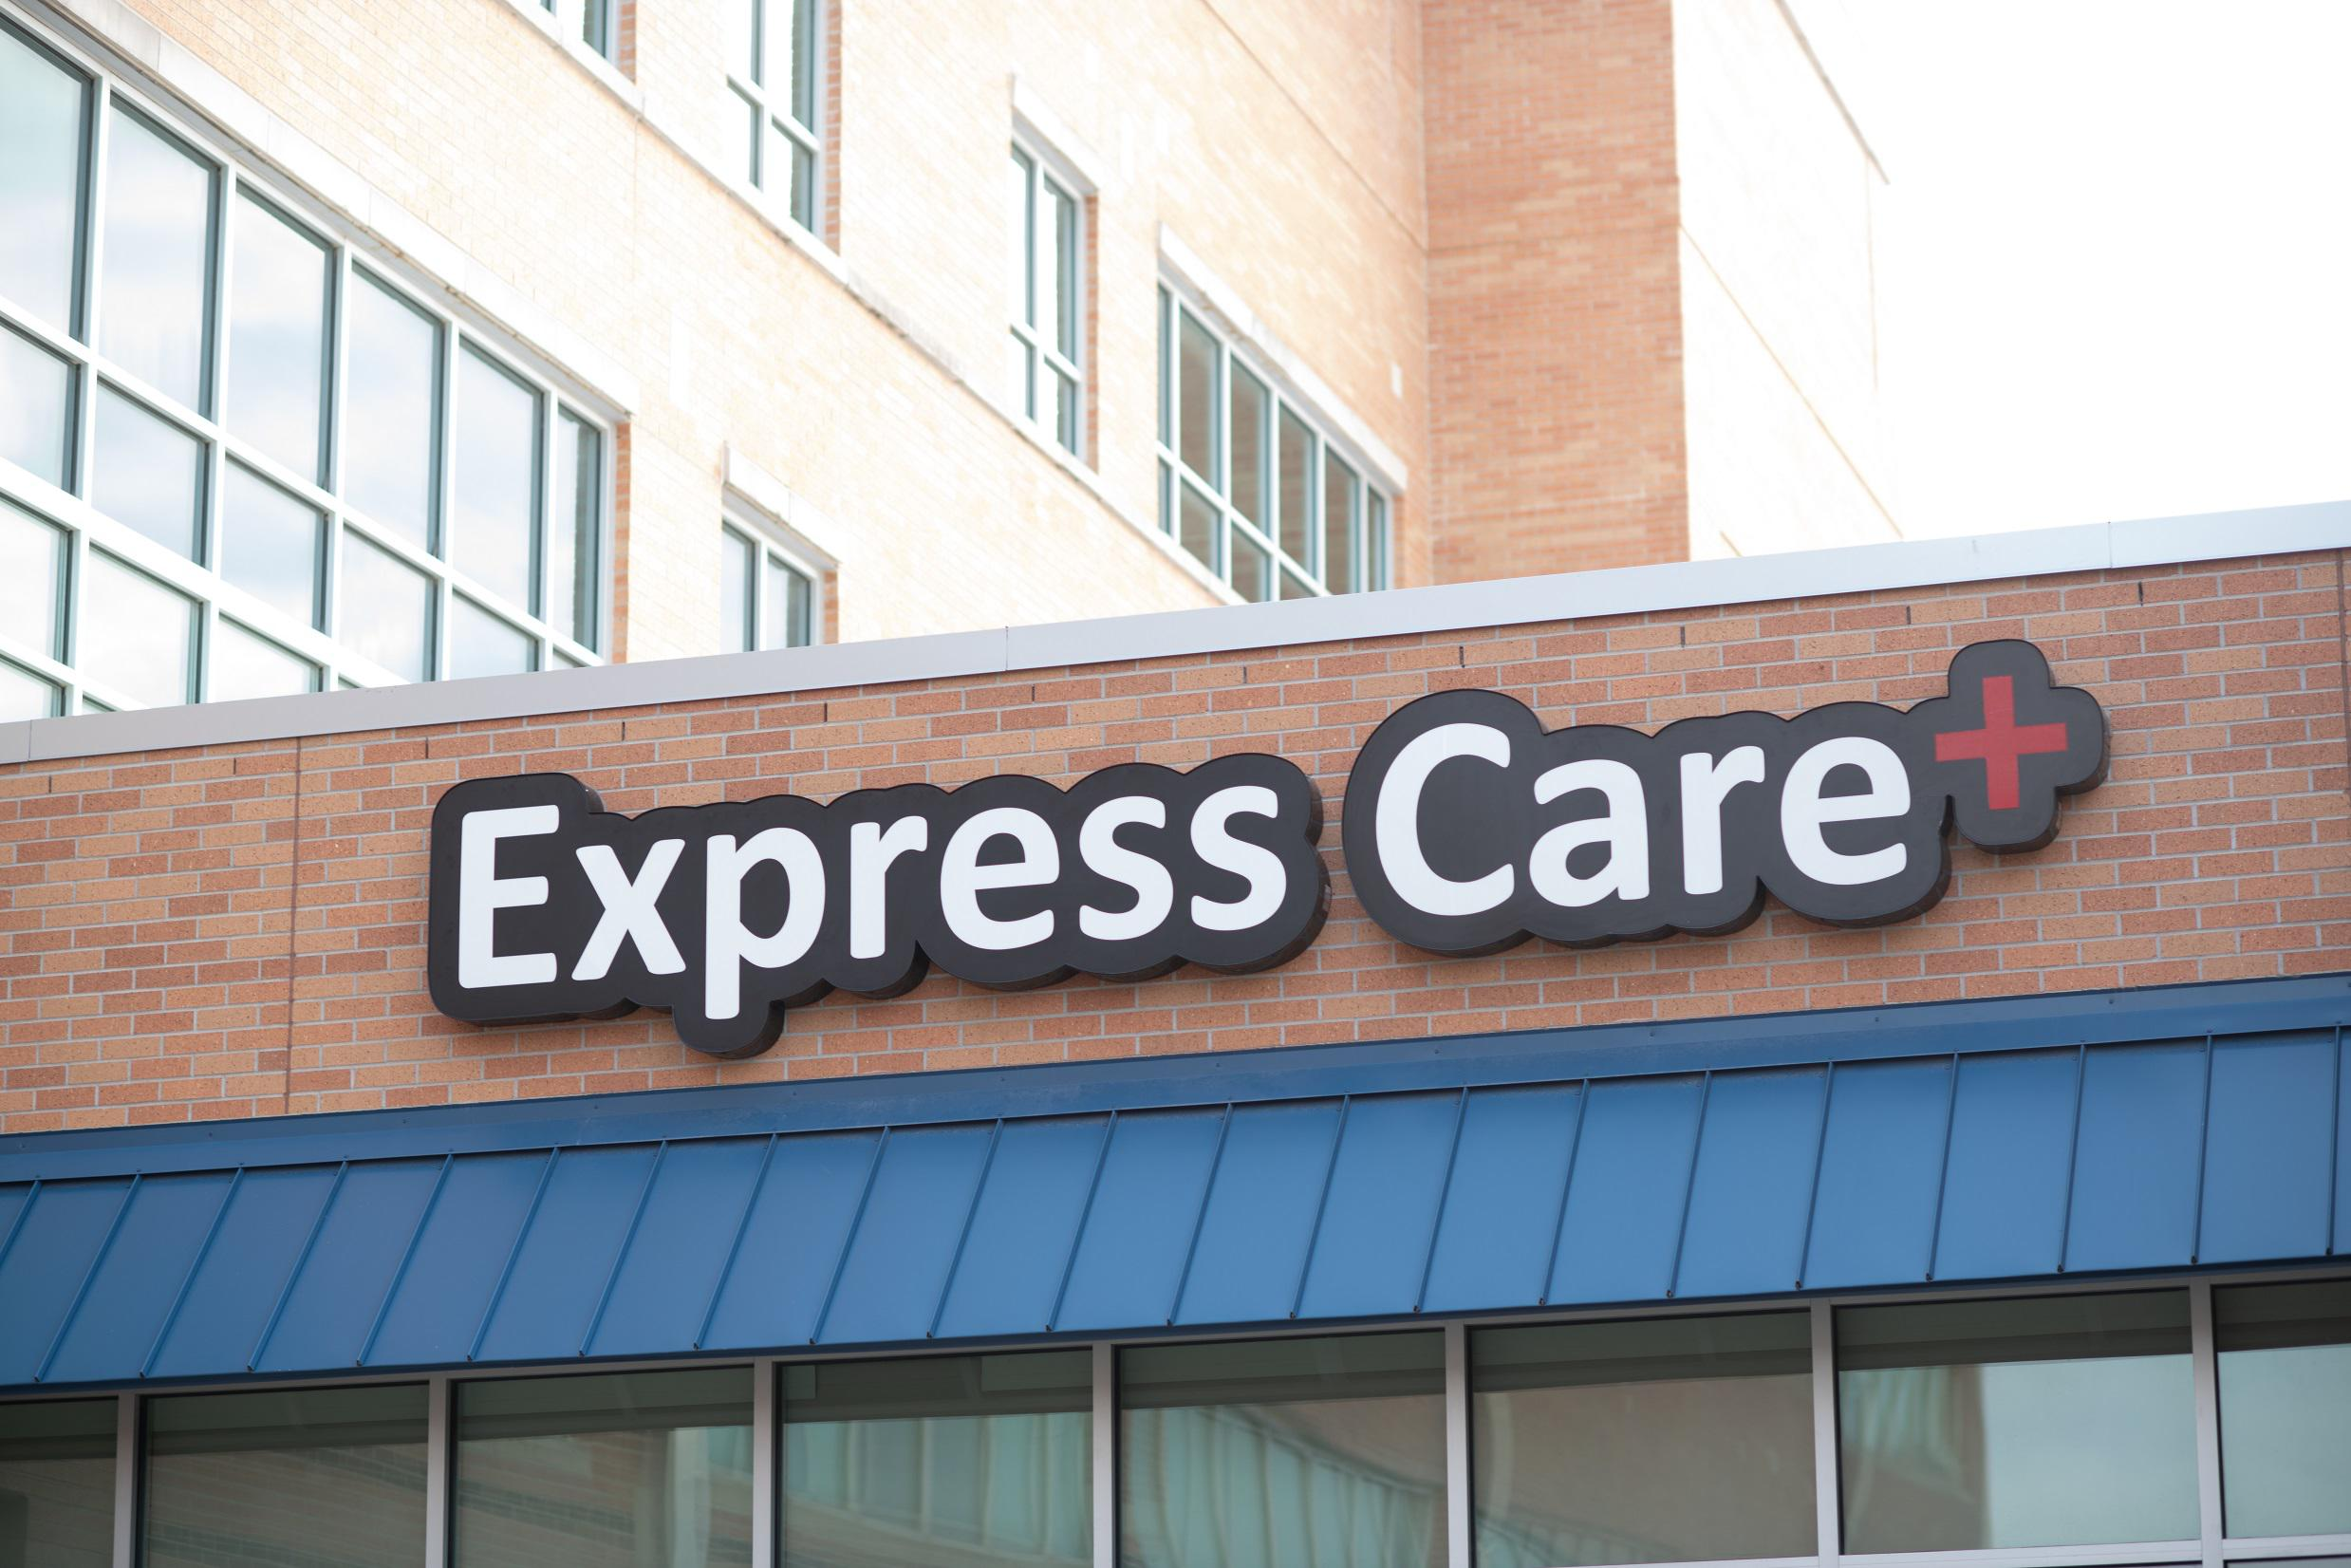 Newman Regional Health Express Care 1301 West 12th Avenue Suite 110